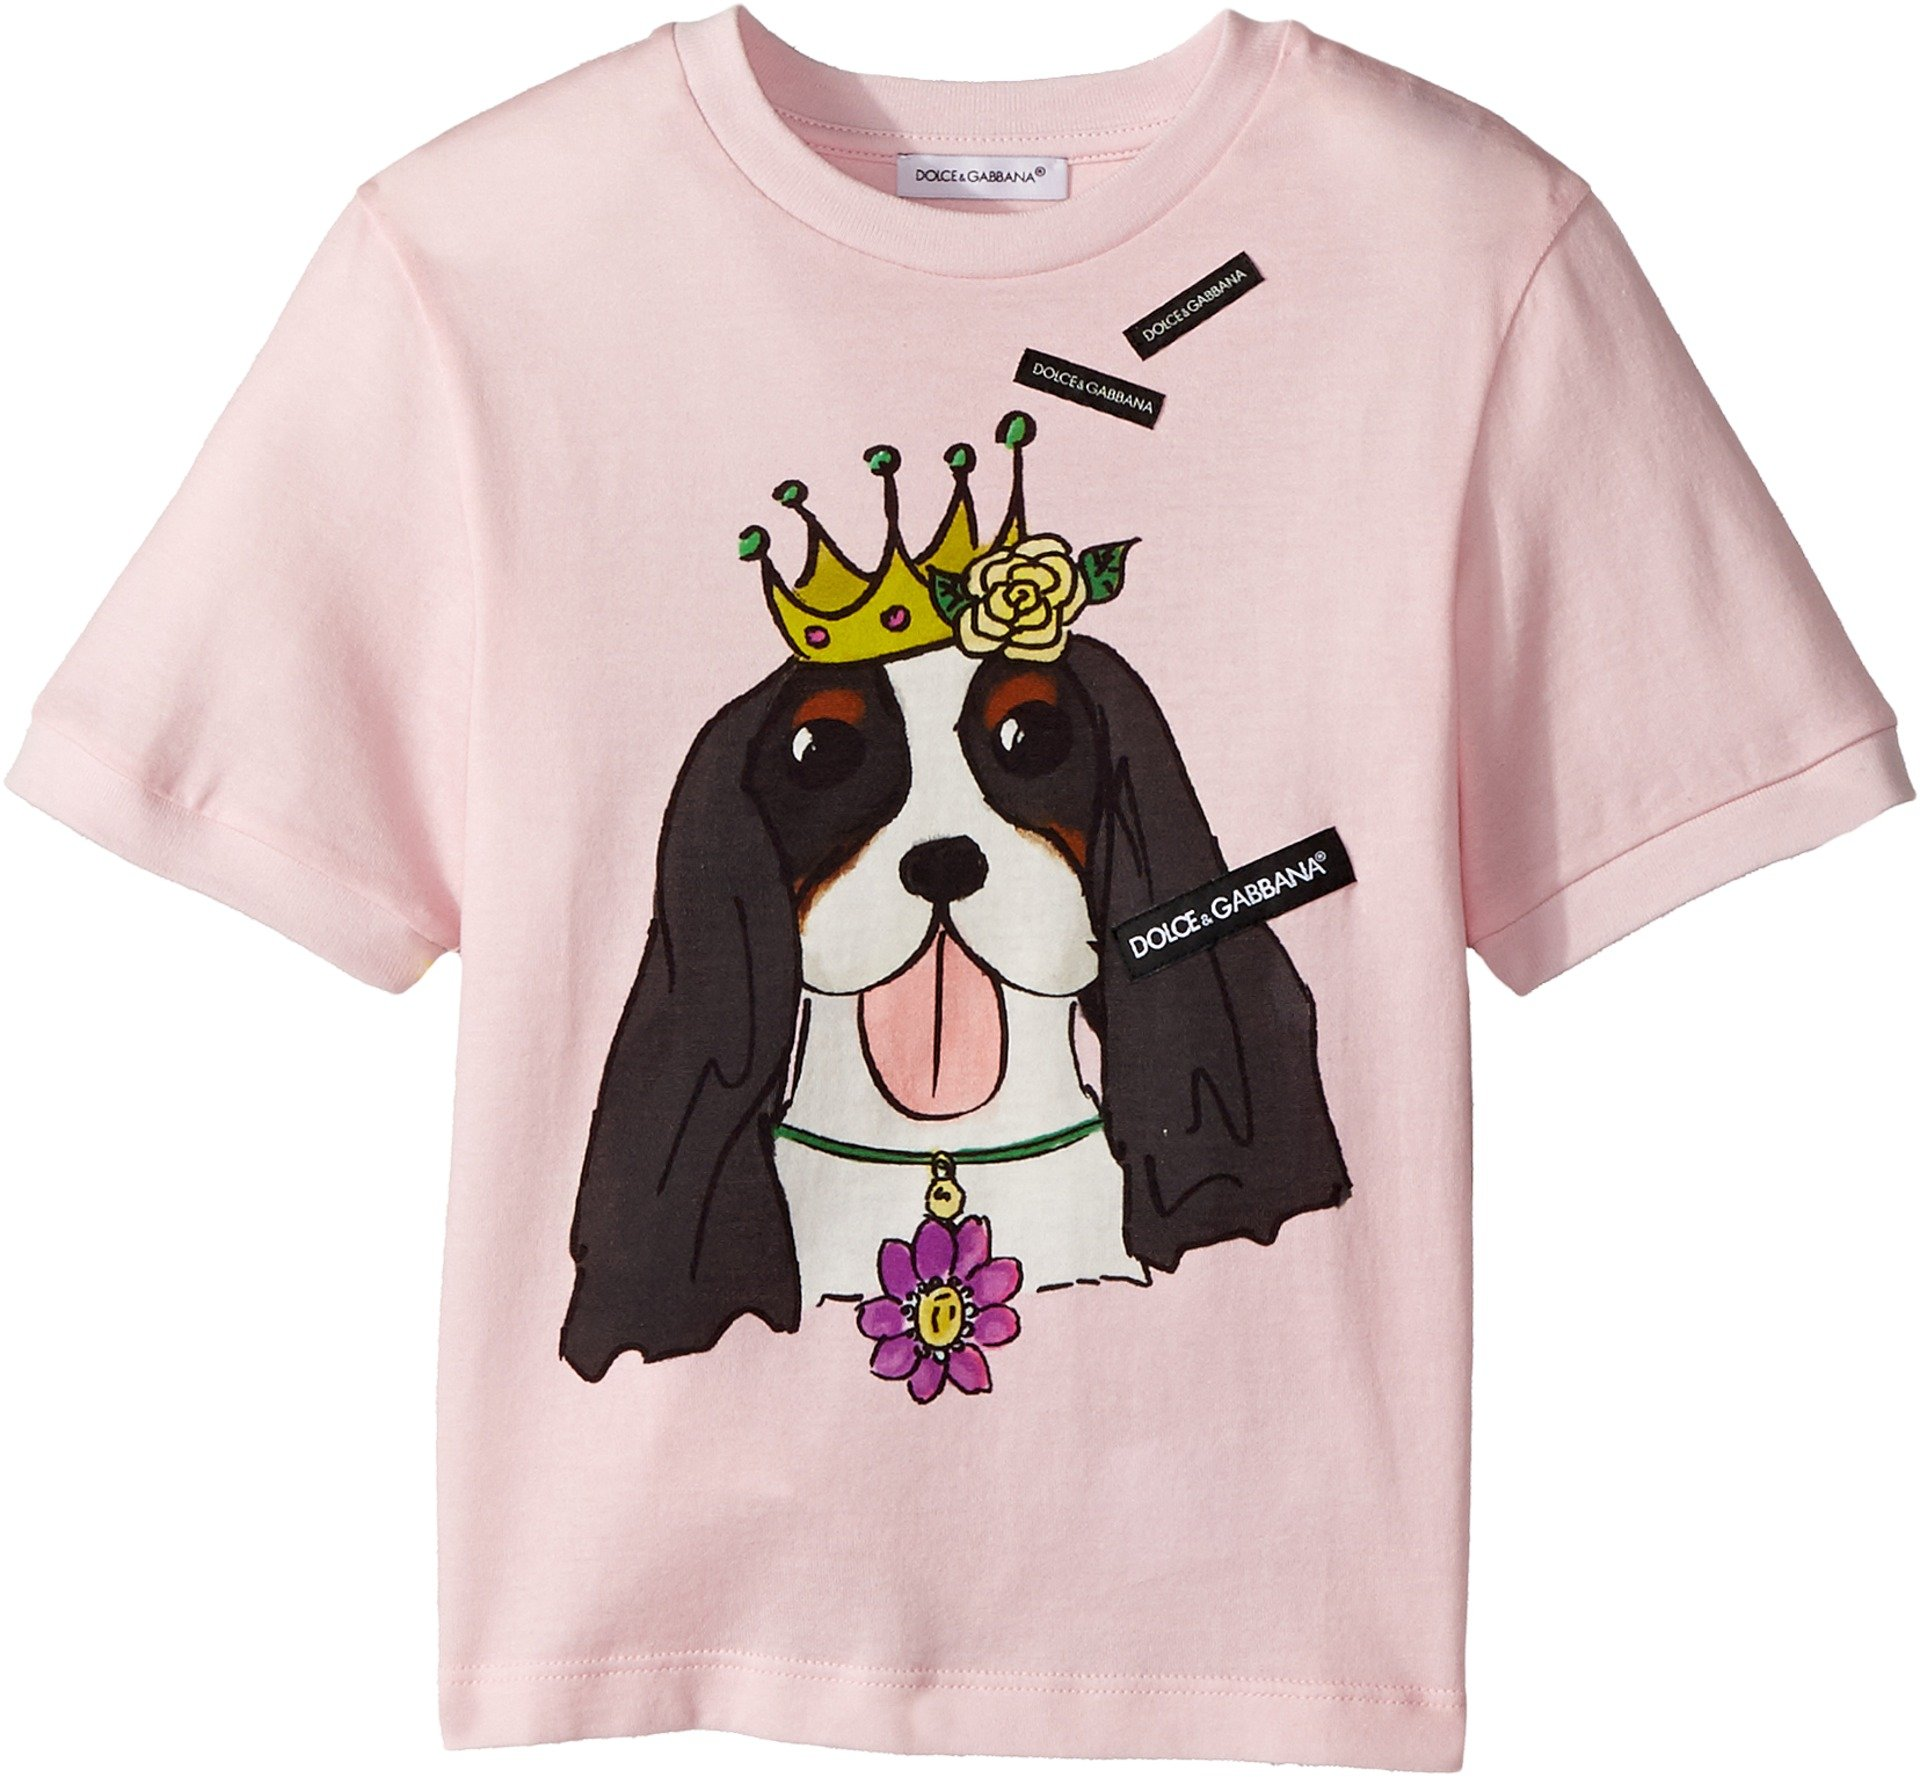 Dolce & Gabbana Kids Baby Girl's T-Shirt (Toddler/Little Kids) Pink Print 3T by Dolce & Gabbana (Image #1)